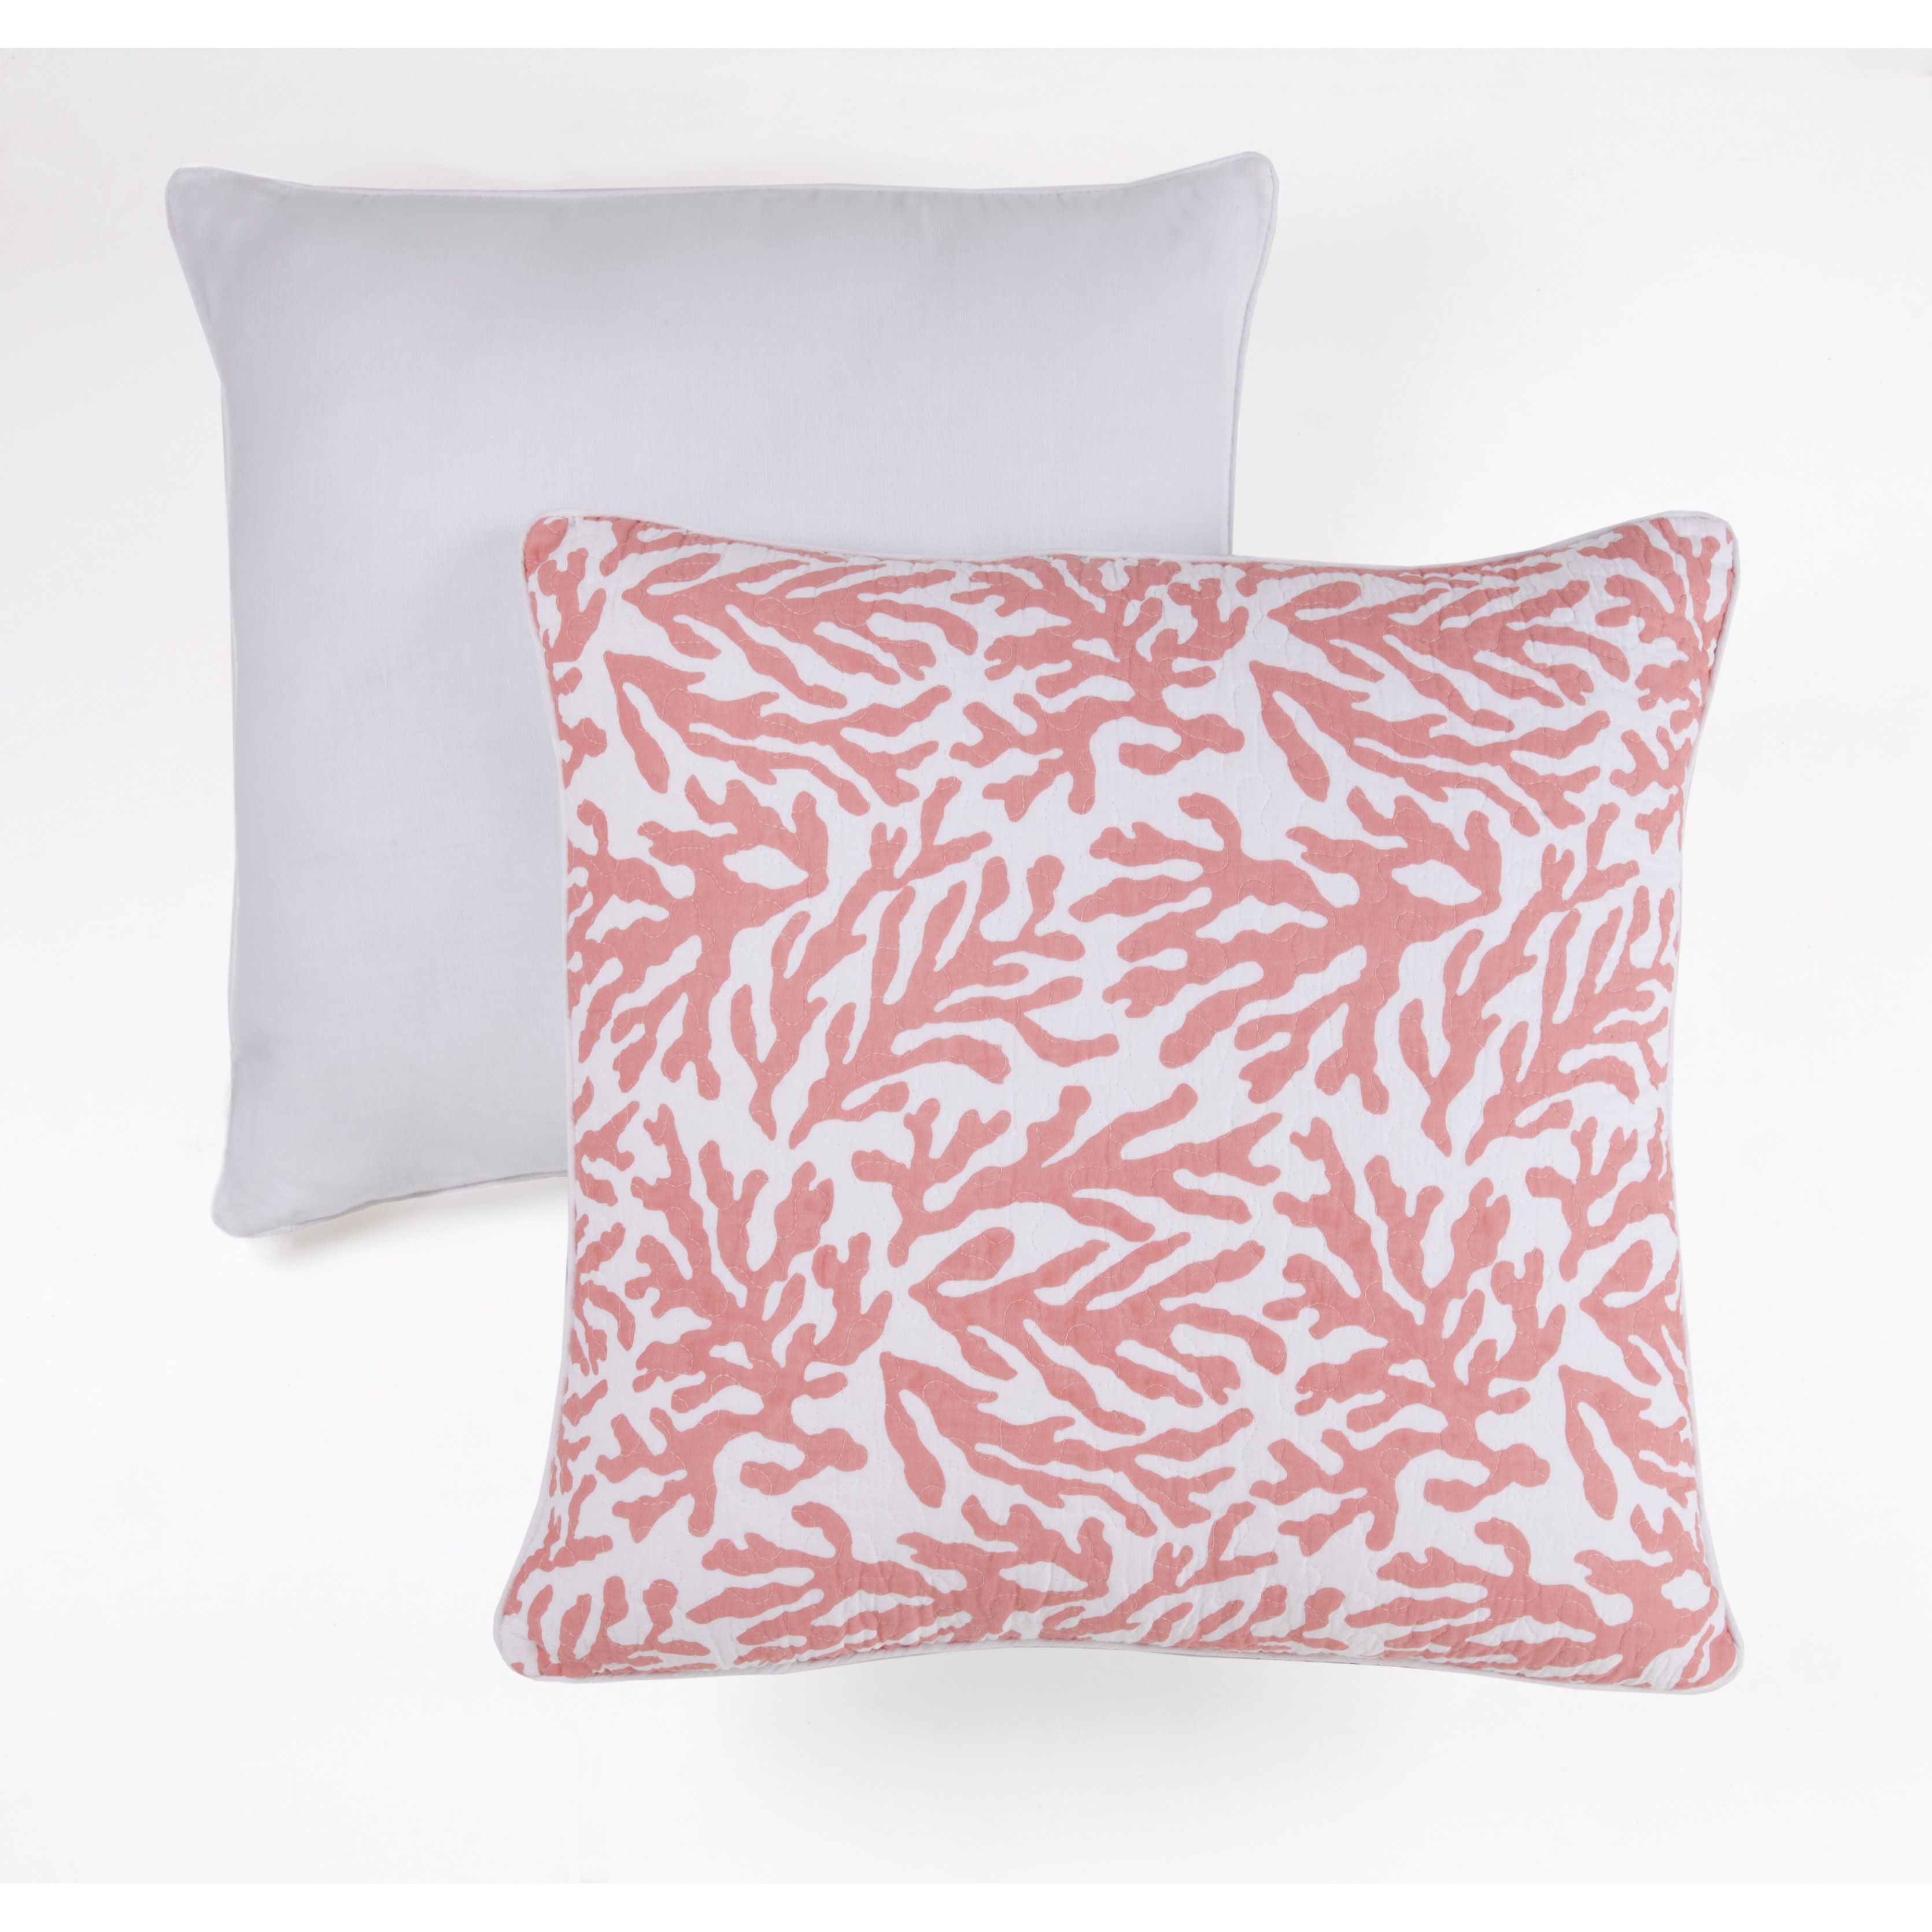 online your make pillows february decorative gallery own blanket throw coral create cushion pillow